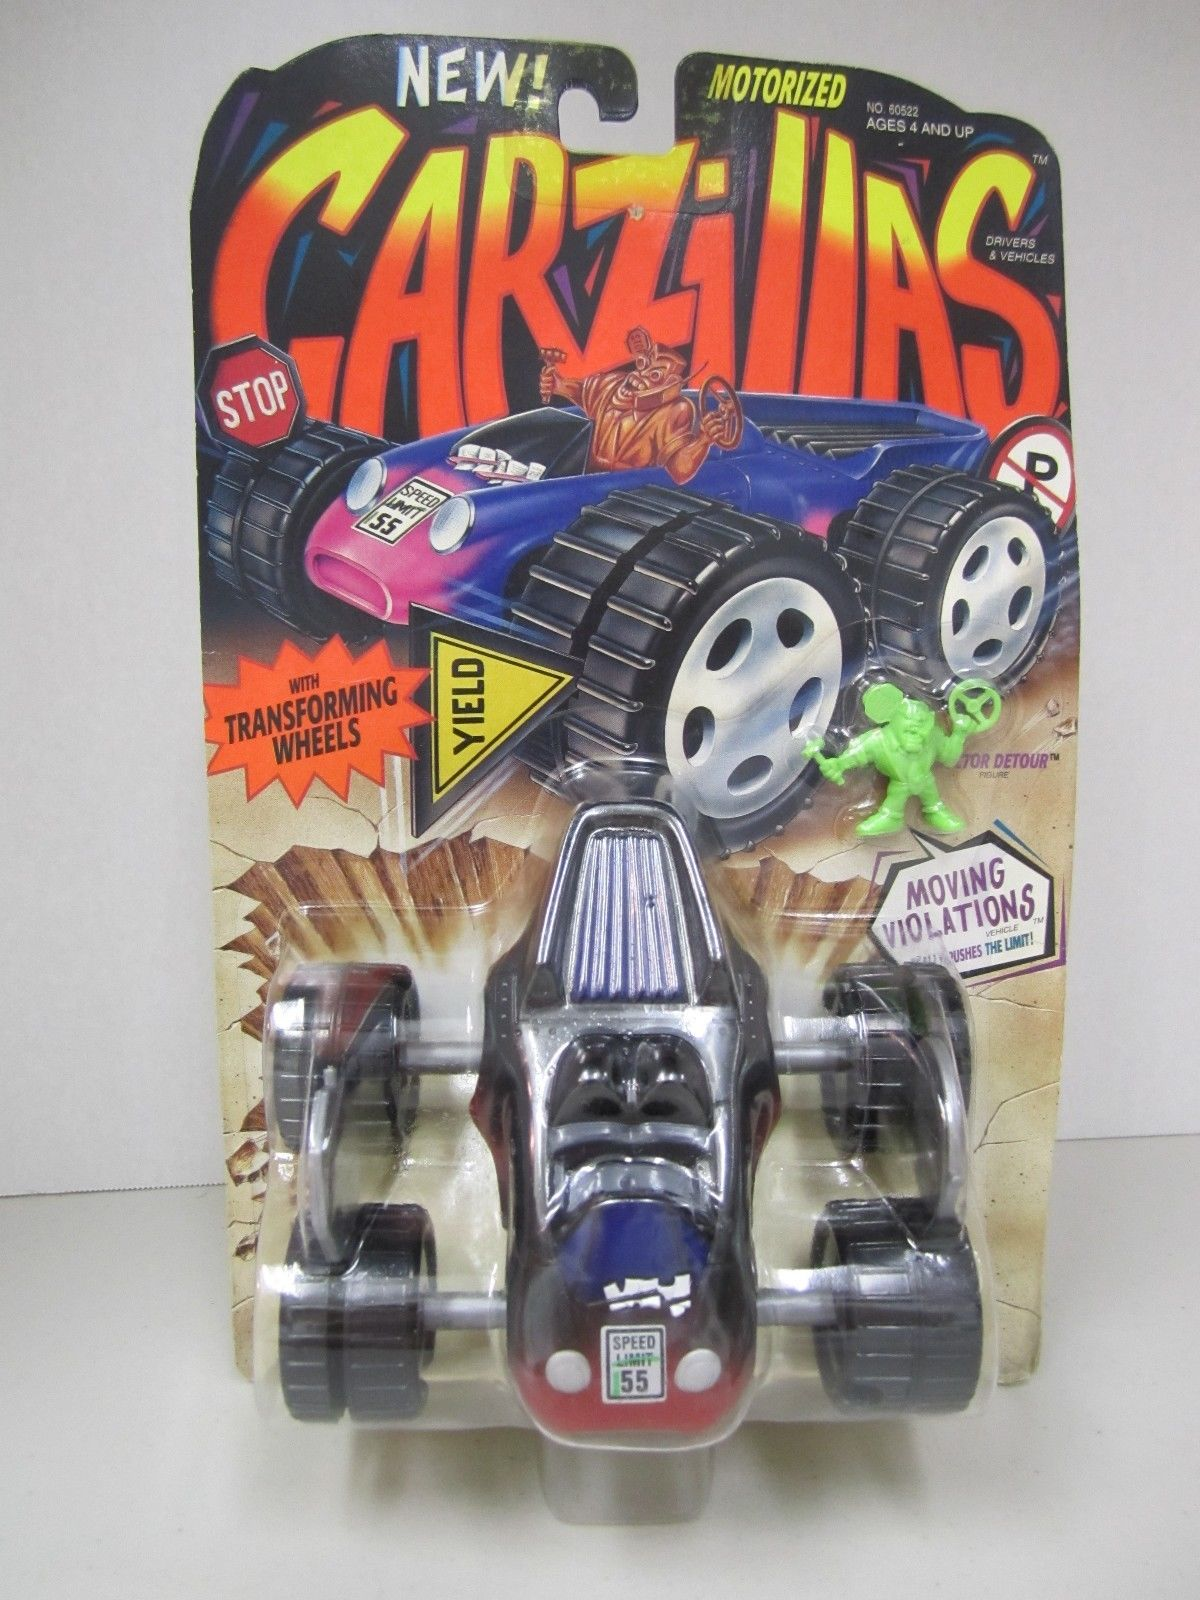 kenner-motorized-carzillas-moving-violations-vehicle-with-transforming-wheels-1049364185.jpg